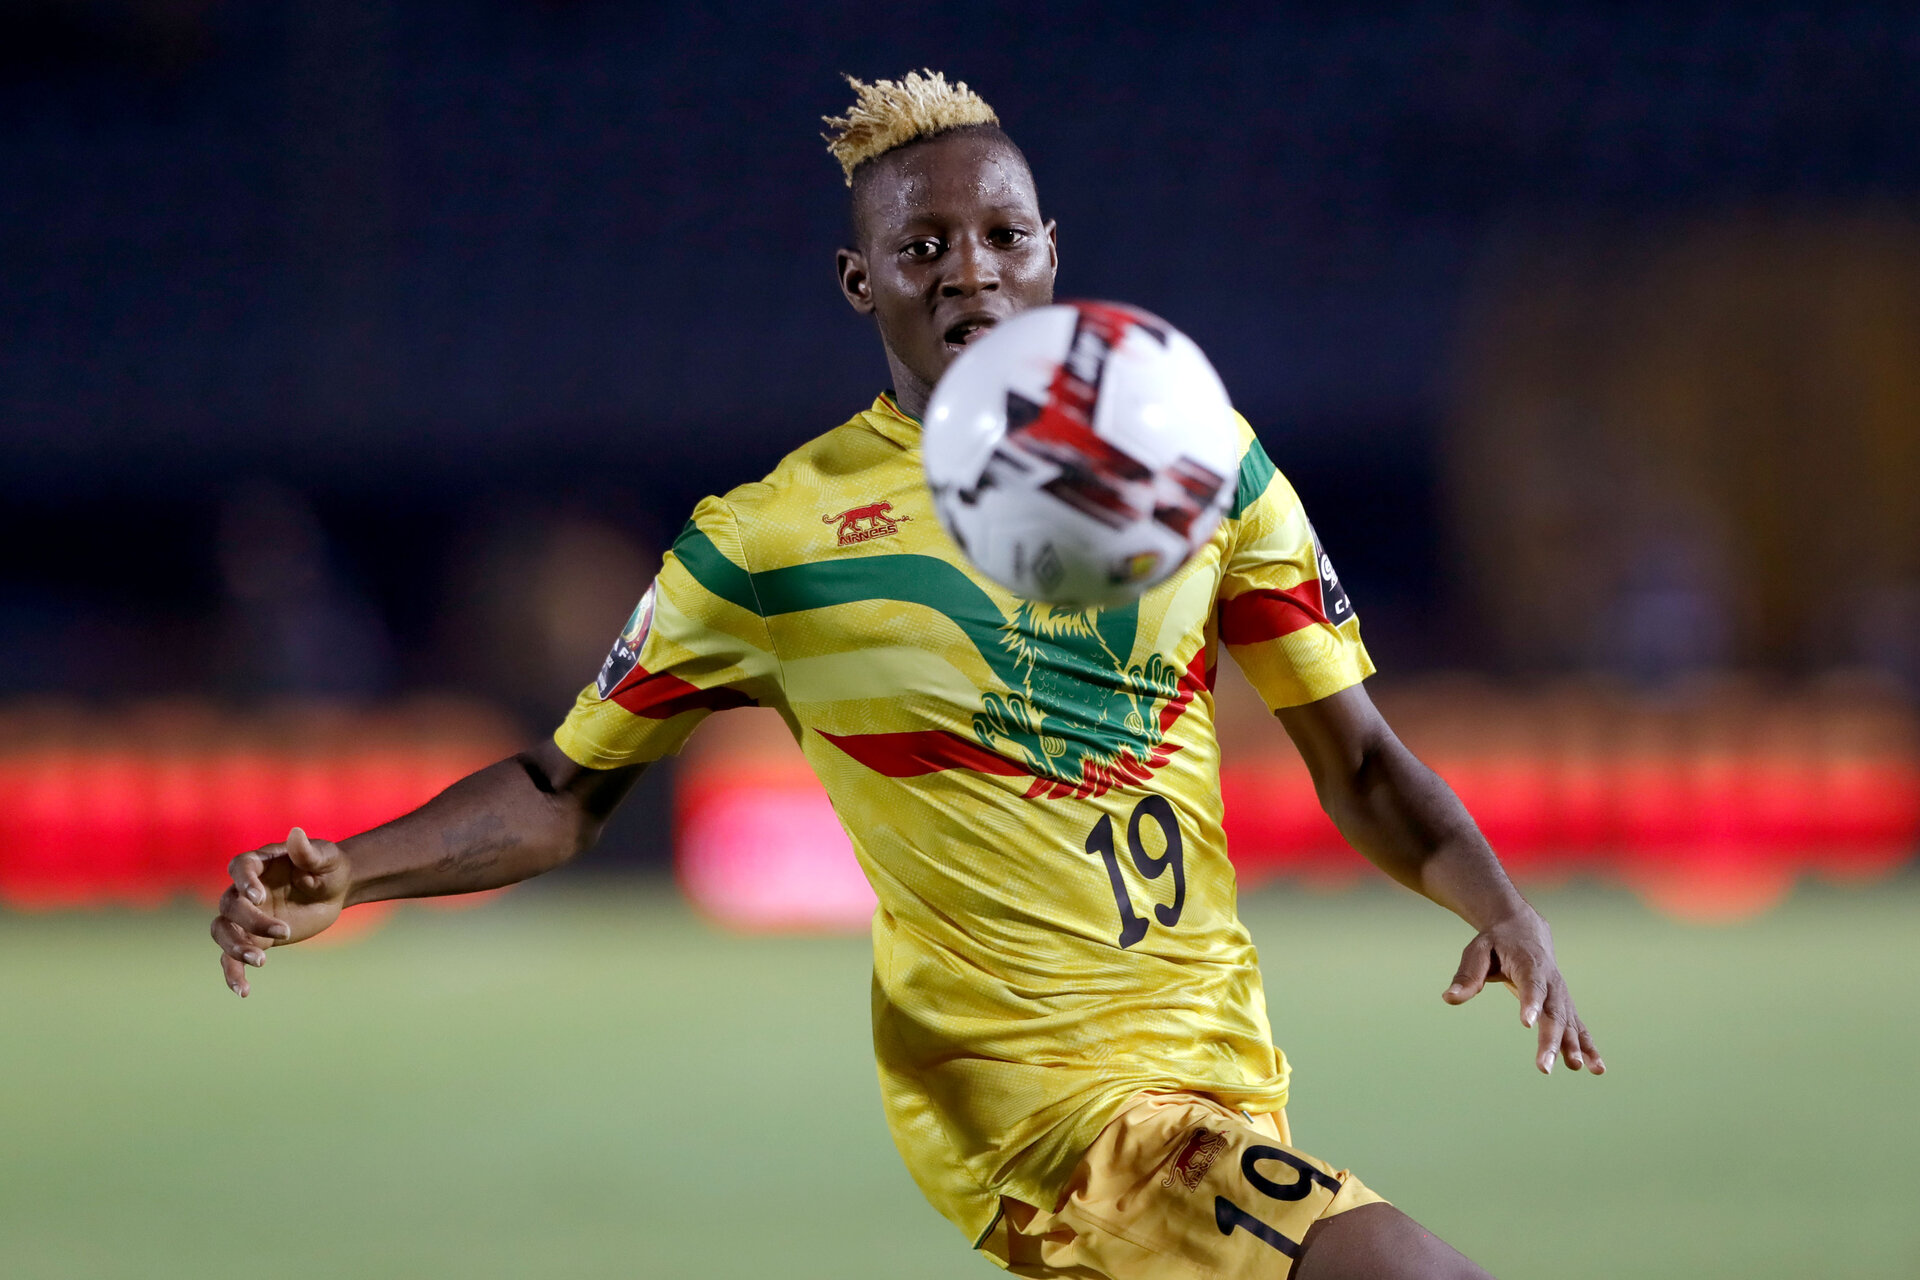 Mali's forward Moussa Djenepo eyes the ball during the 2019 Africa Cup of Nations (CAN) Round of 16 football match between Ivory Coast and Mali at the Suez Stadium in the north-eastern Egyptian city on July 8, 2019. (Photo by FADEL SENNA / AFP)        (Photo credit should read FADEL SENNA/AFP via Getty Images)